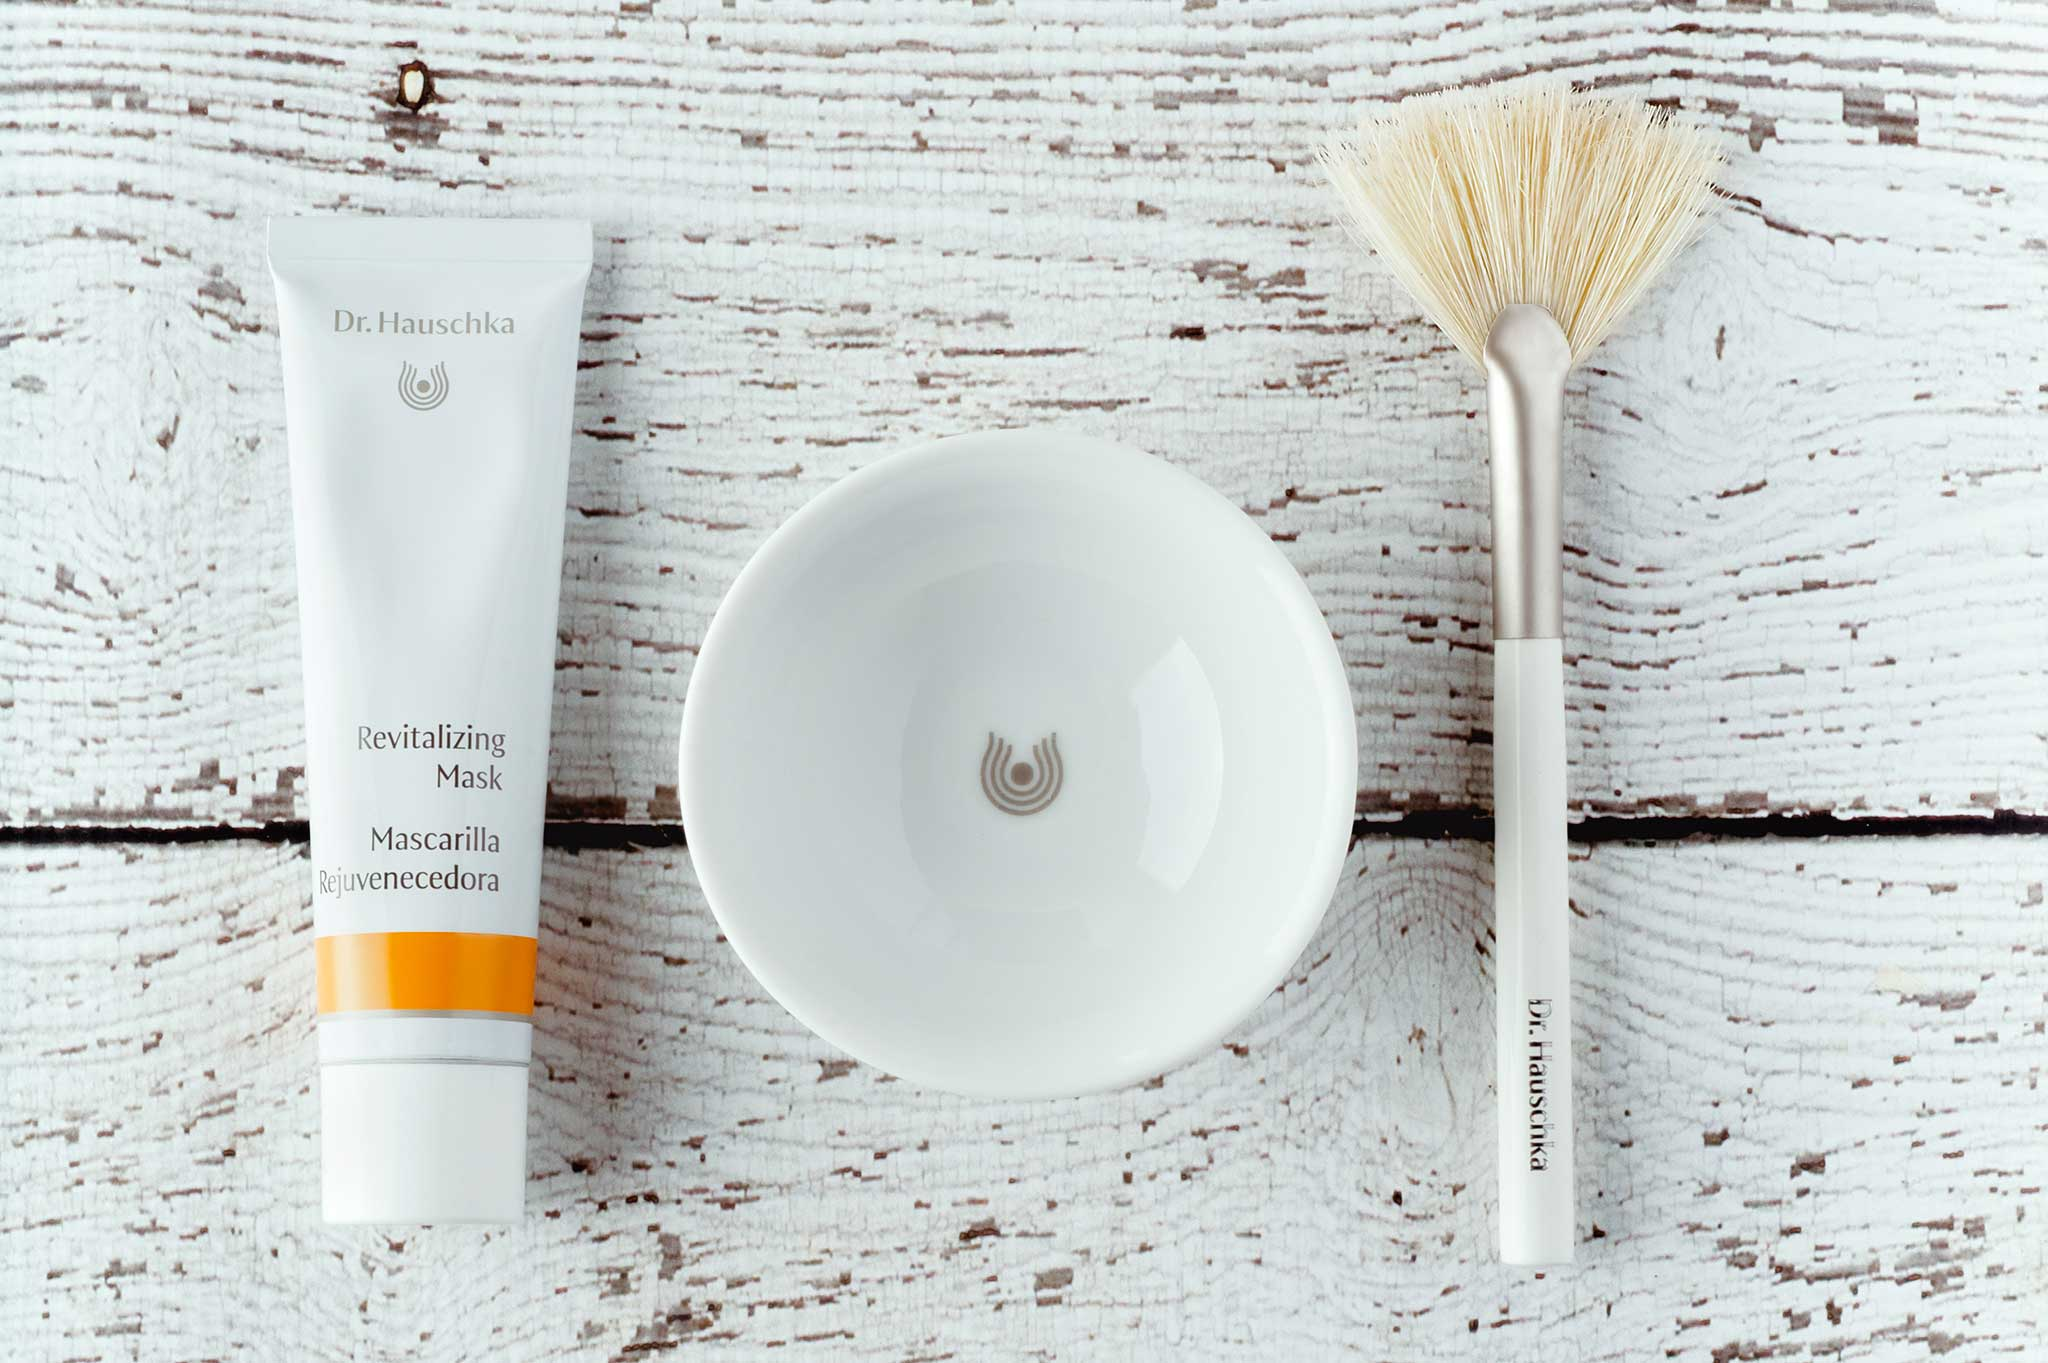 Receive a free 3-piece bonus gift with your $125 Dr Hauschka purchase